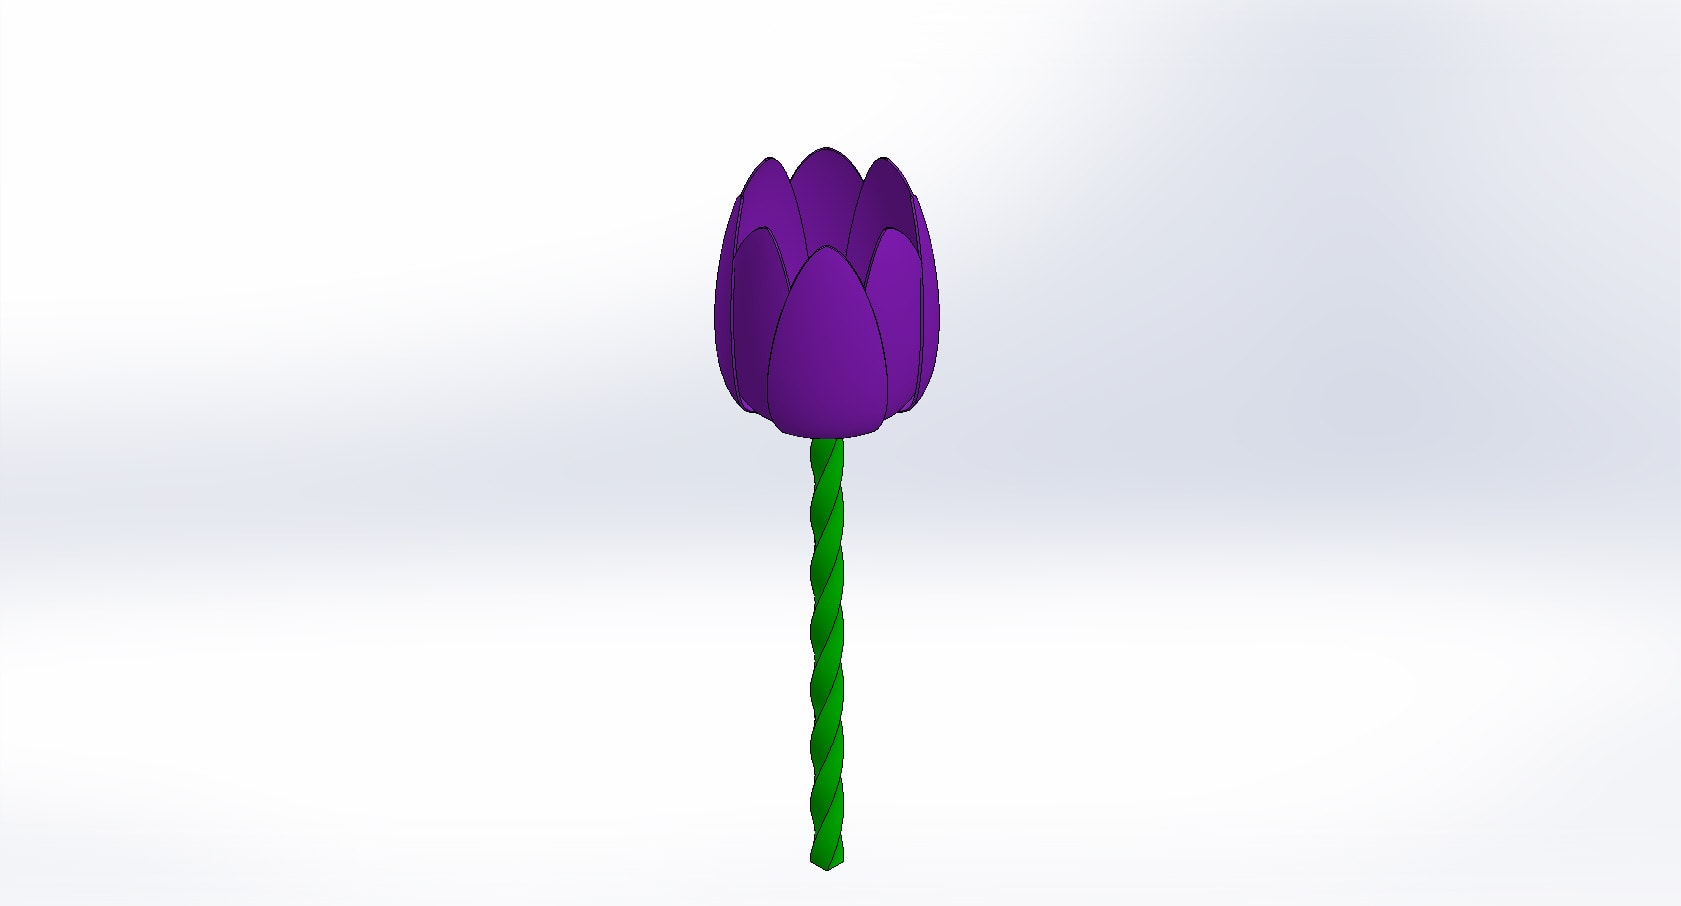 C:\Users\mspeer\AppData\Local\Microsoft\Windows\INetCacheContent.Word\stem with tulip.jpg